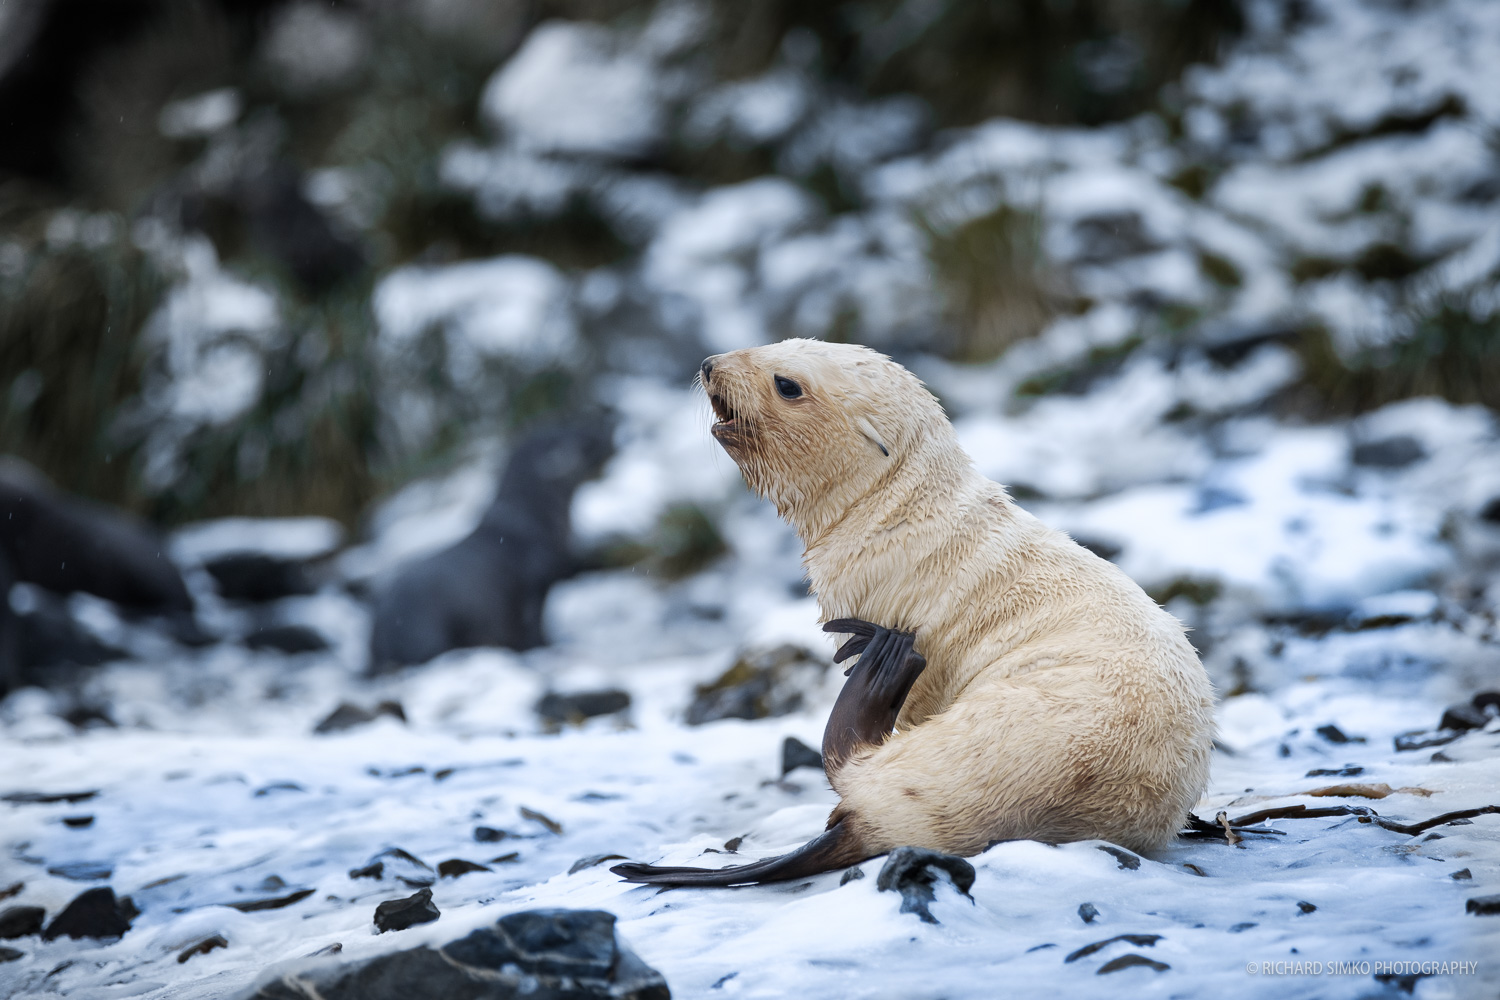 We have been very lucky as we came across these very rare blonde fur seals several times during our trip.